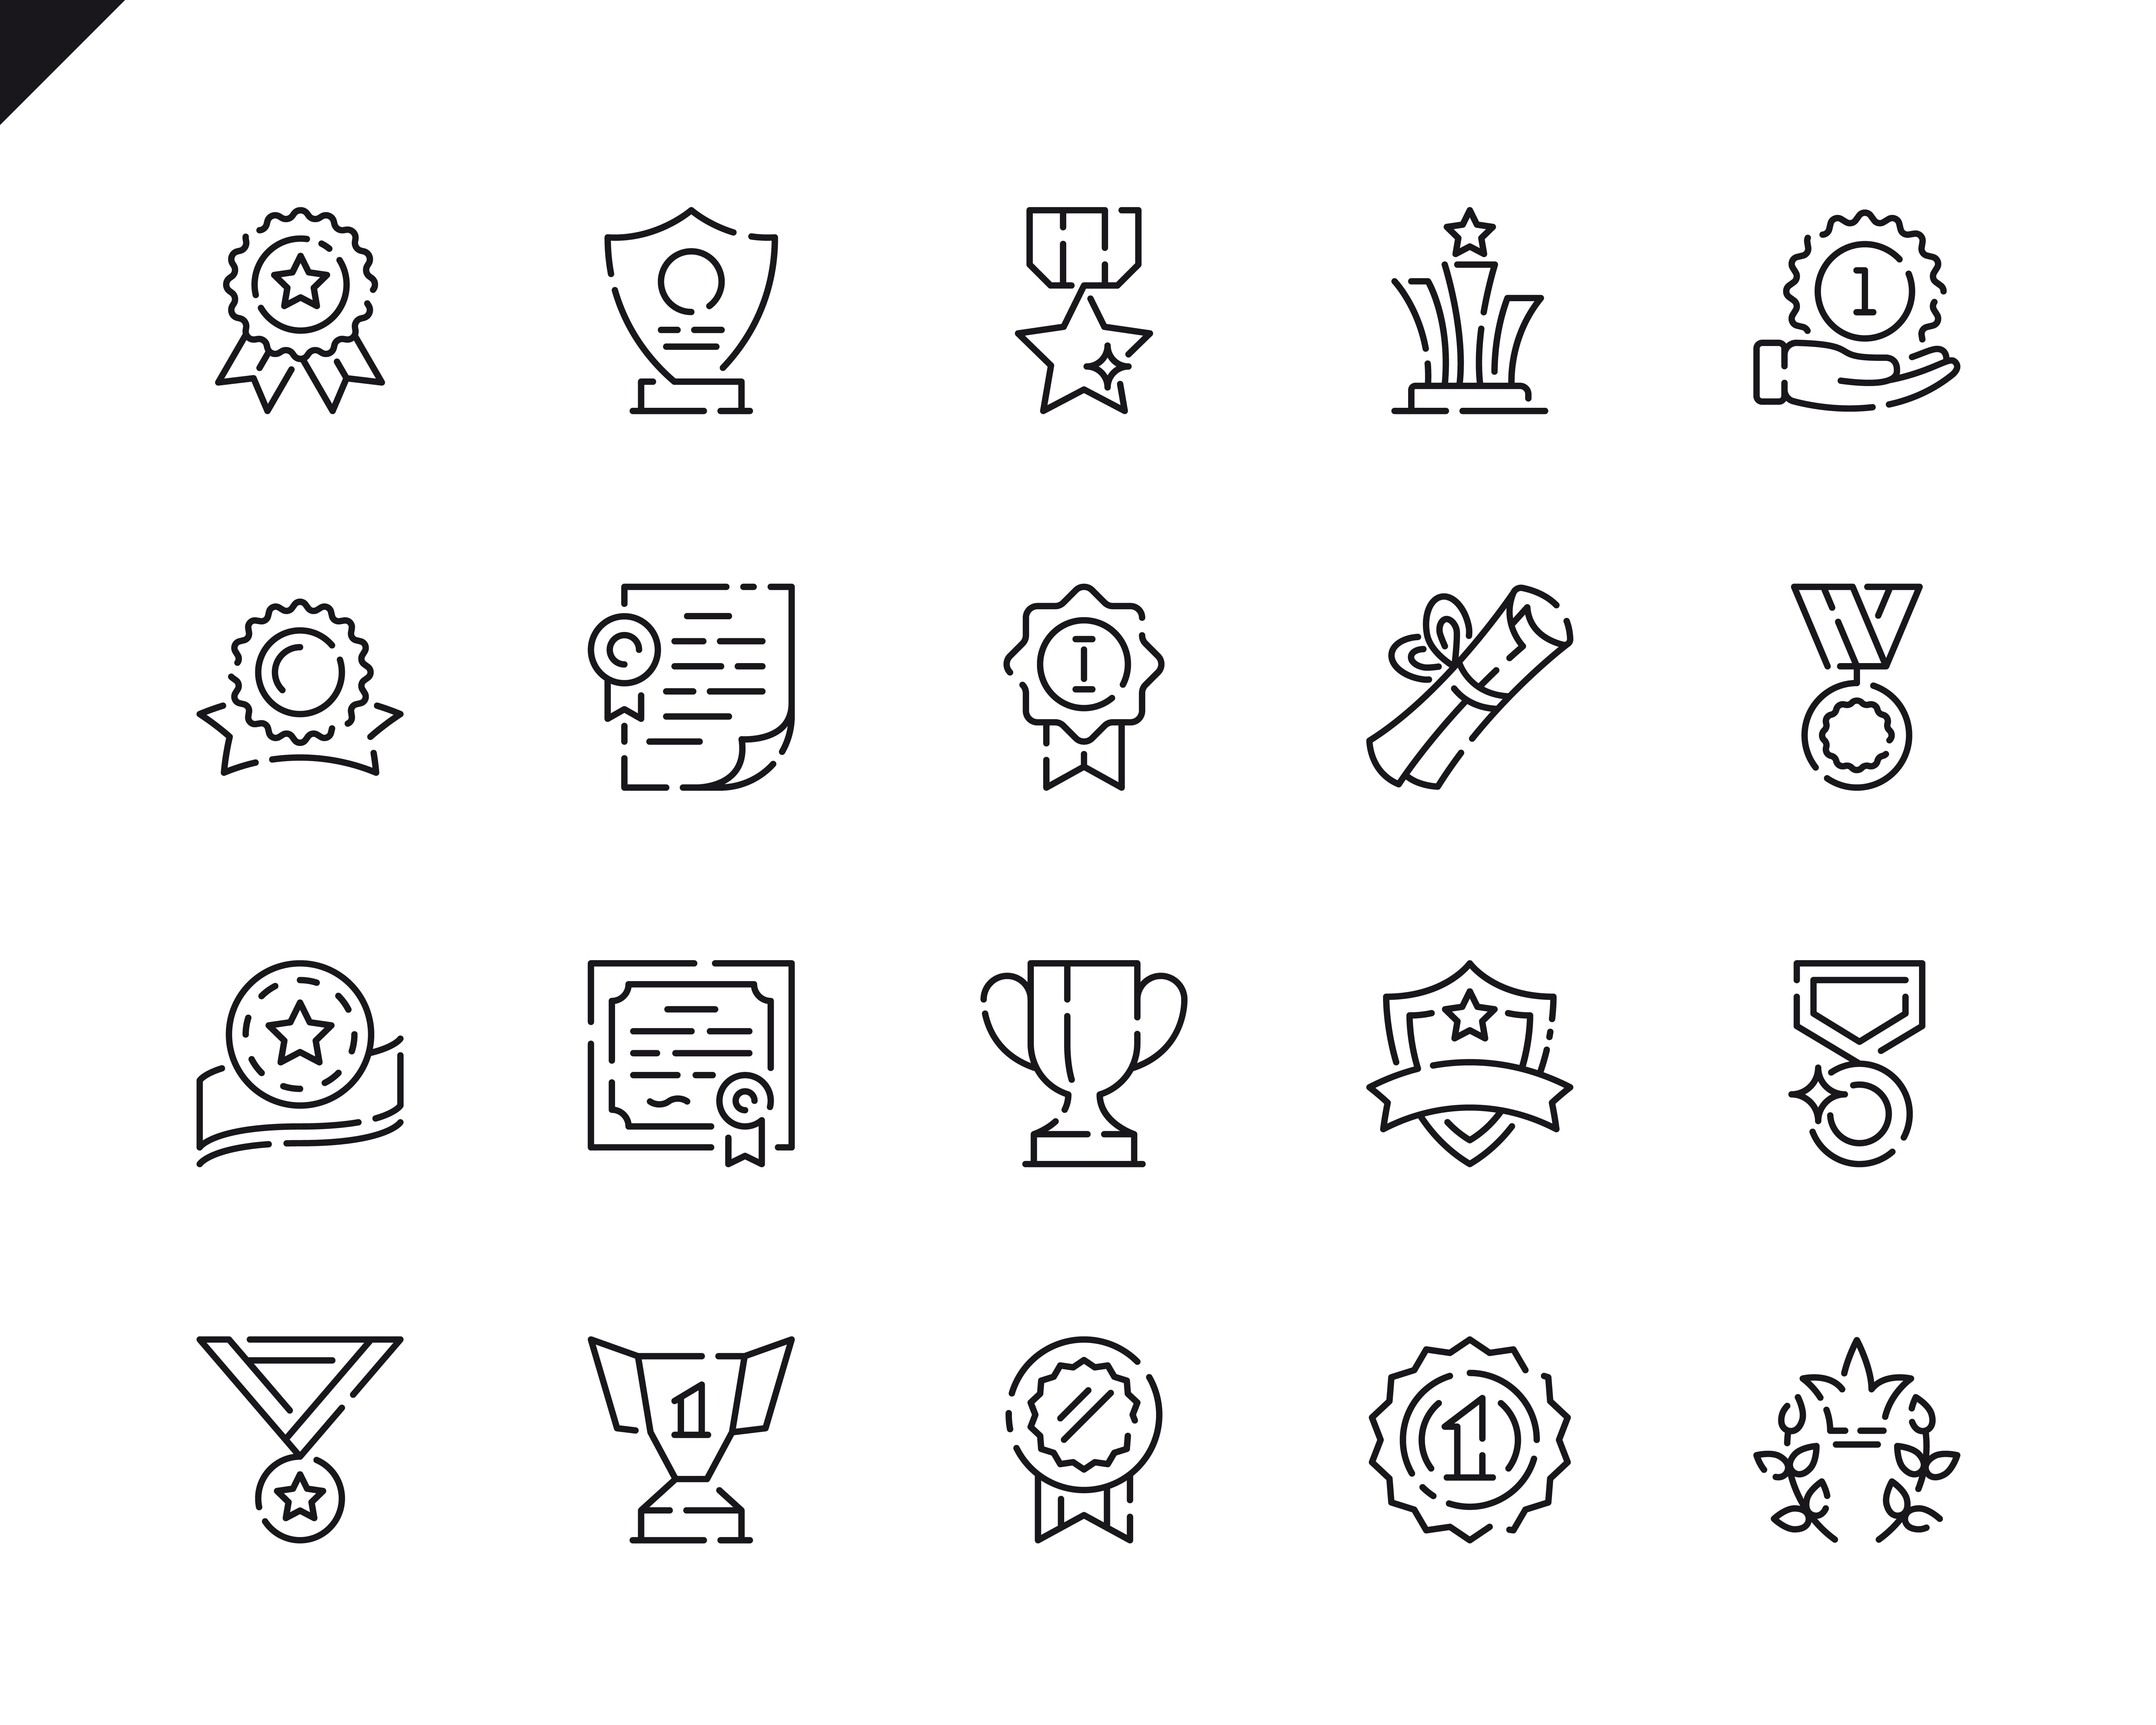 500 Business Line Icons - $22 ONLY - 9 4